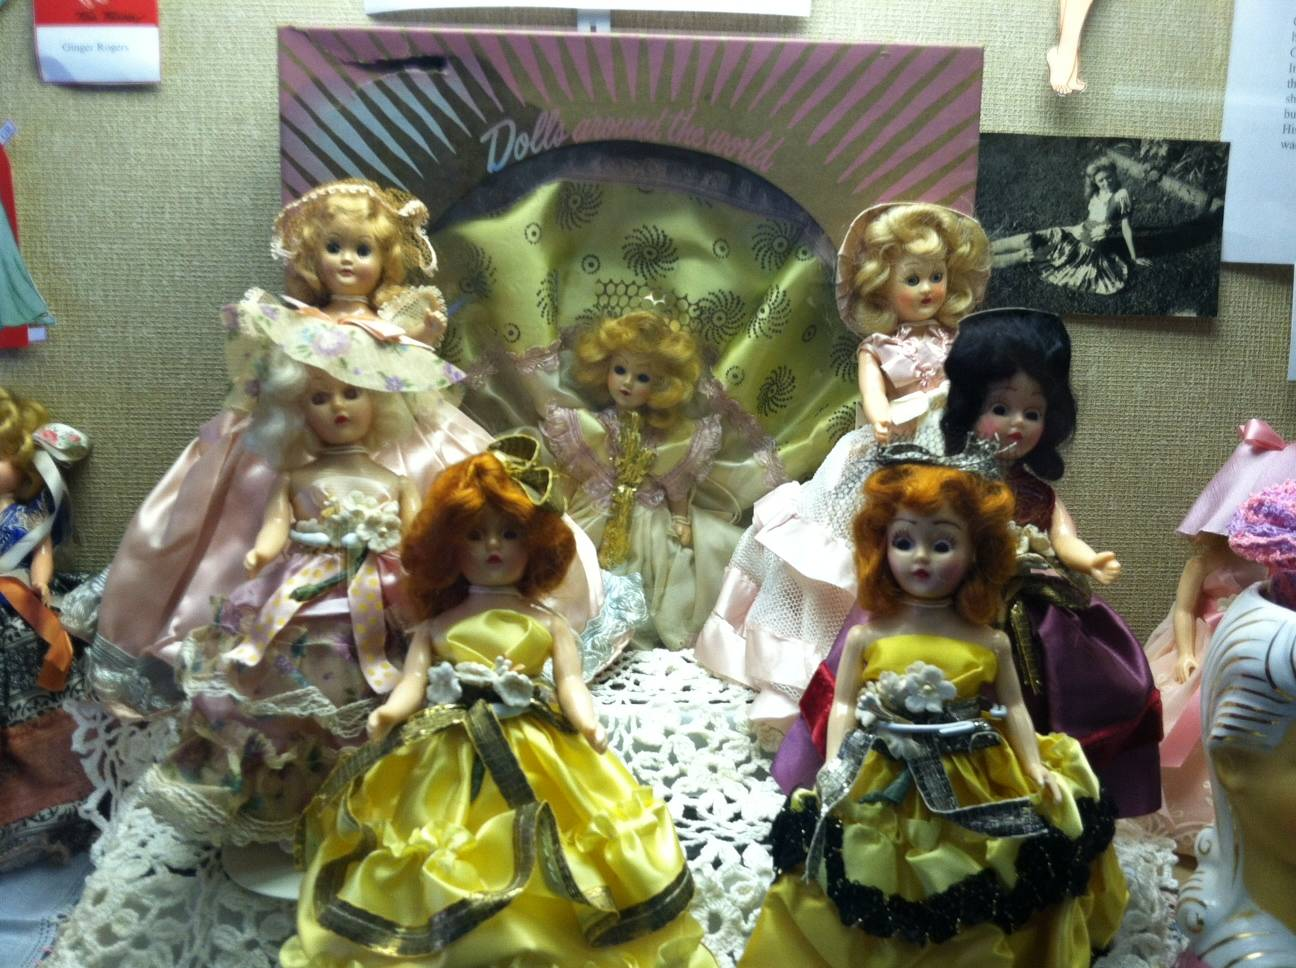 Newly acquired to the collection, the Duchess Dolls make their debut in the new doll exhibit Reflections on Fashion.